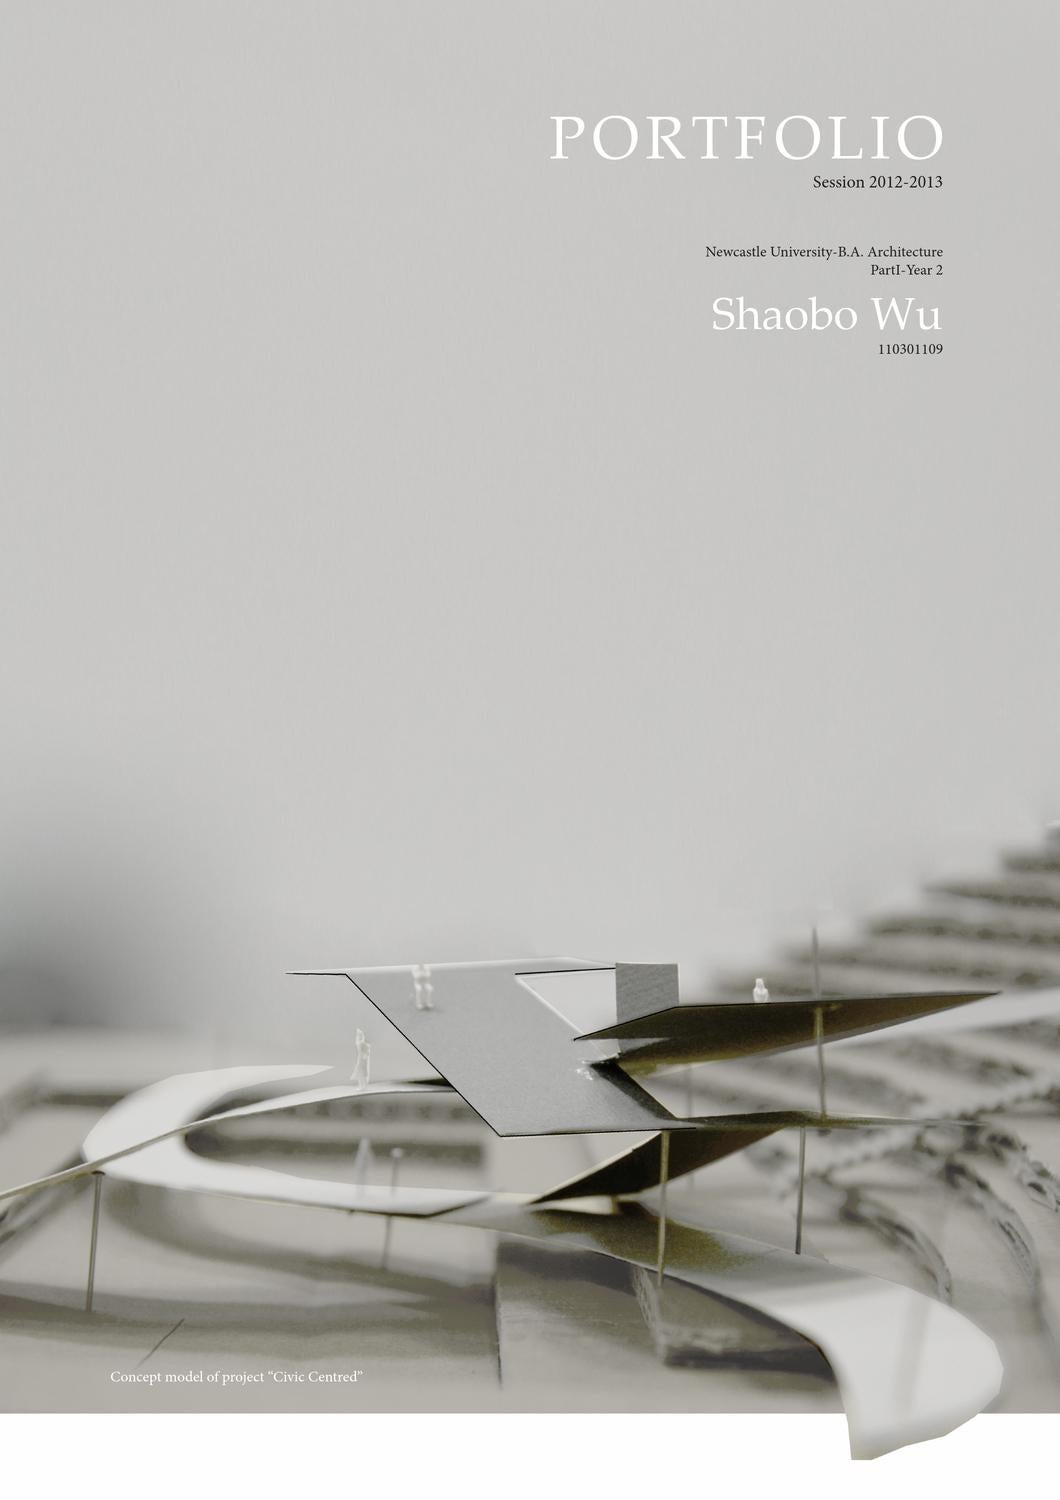 Shaobo wu architecture portfolio session 2012 2013 by for Architecture portfolio